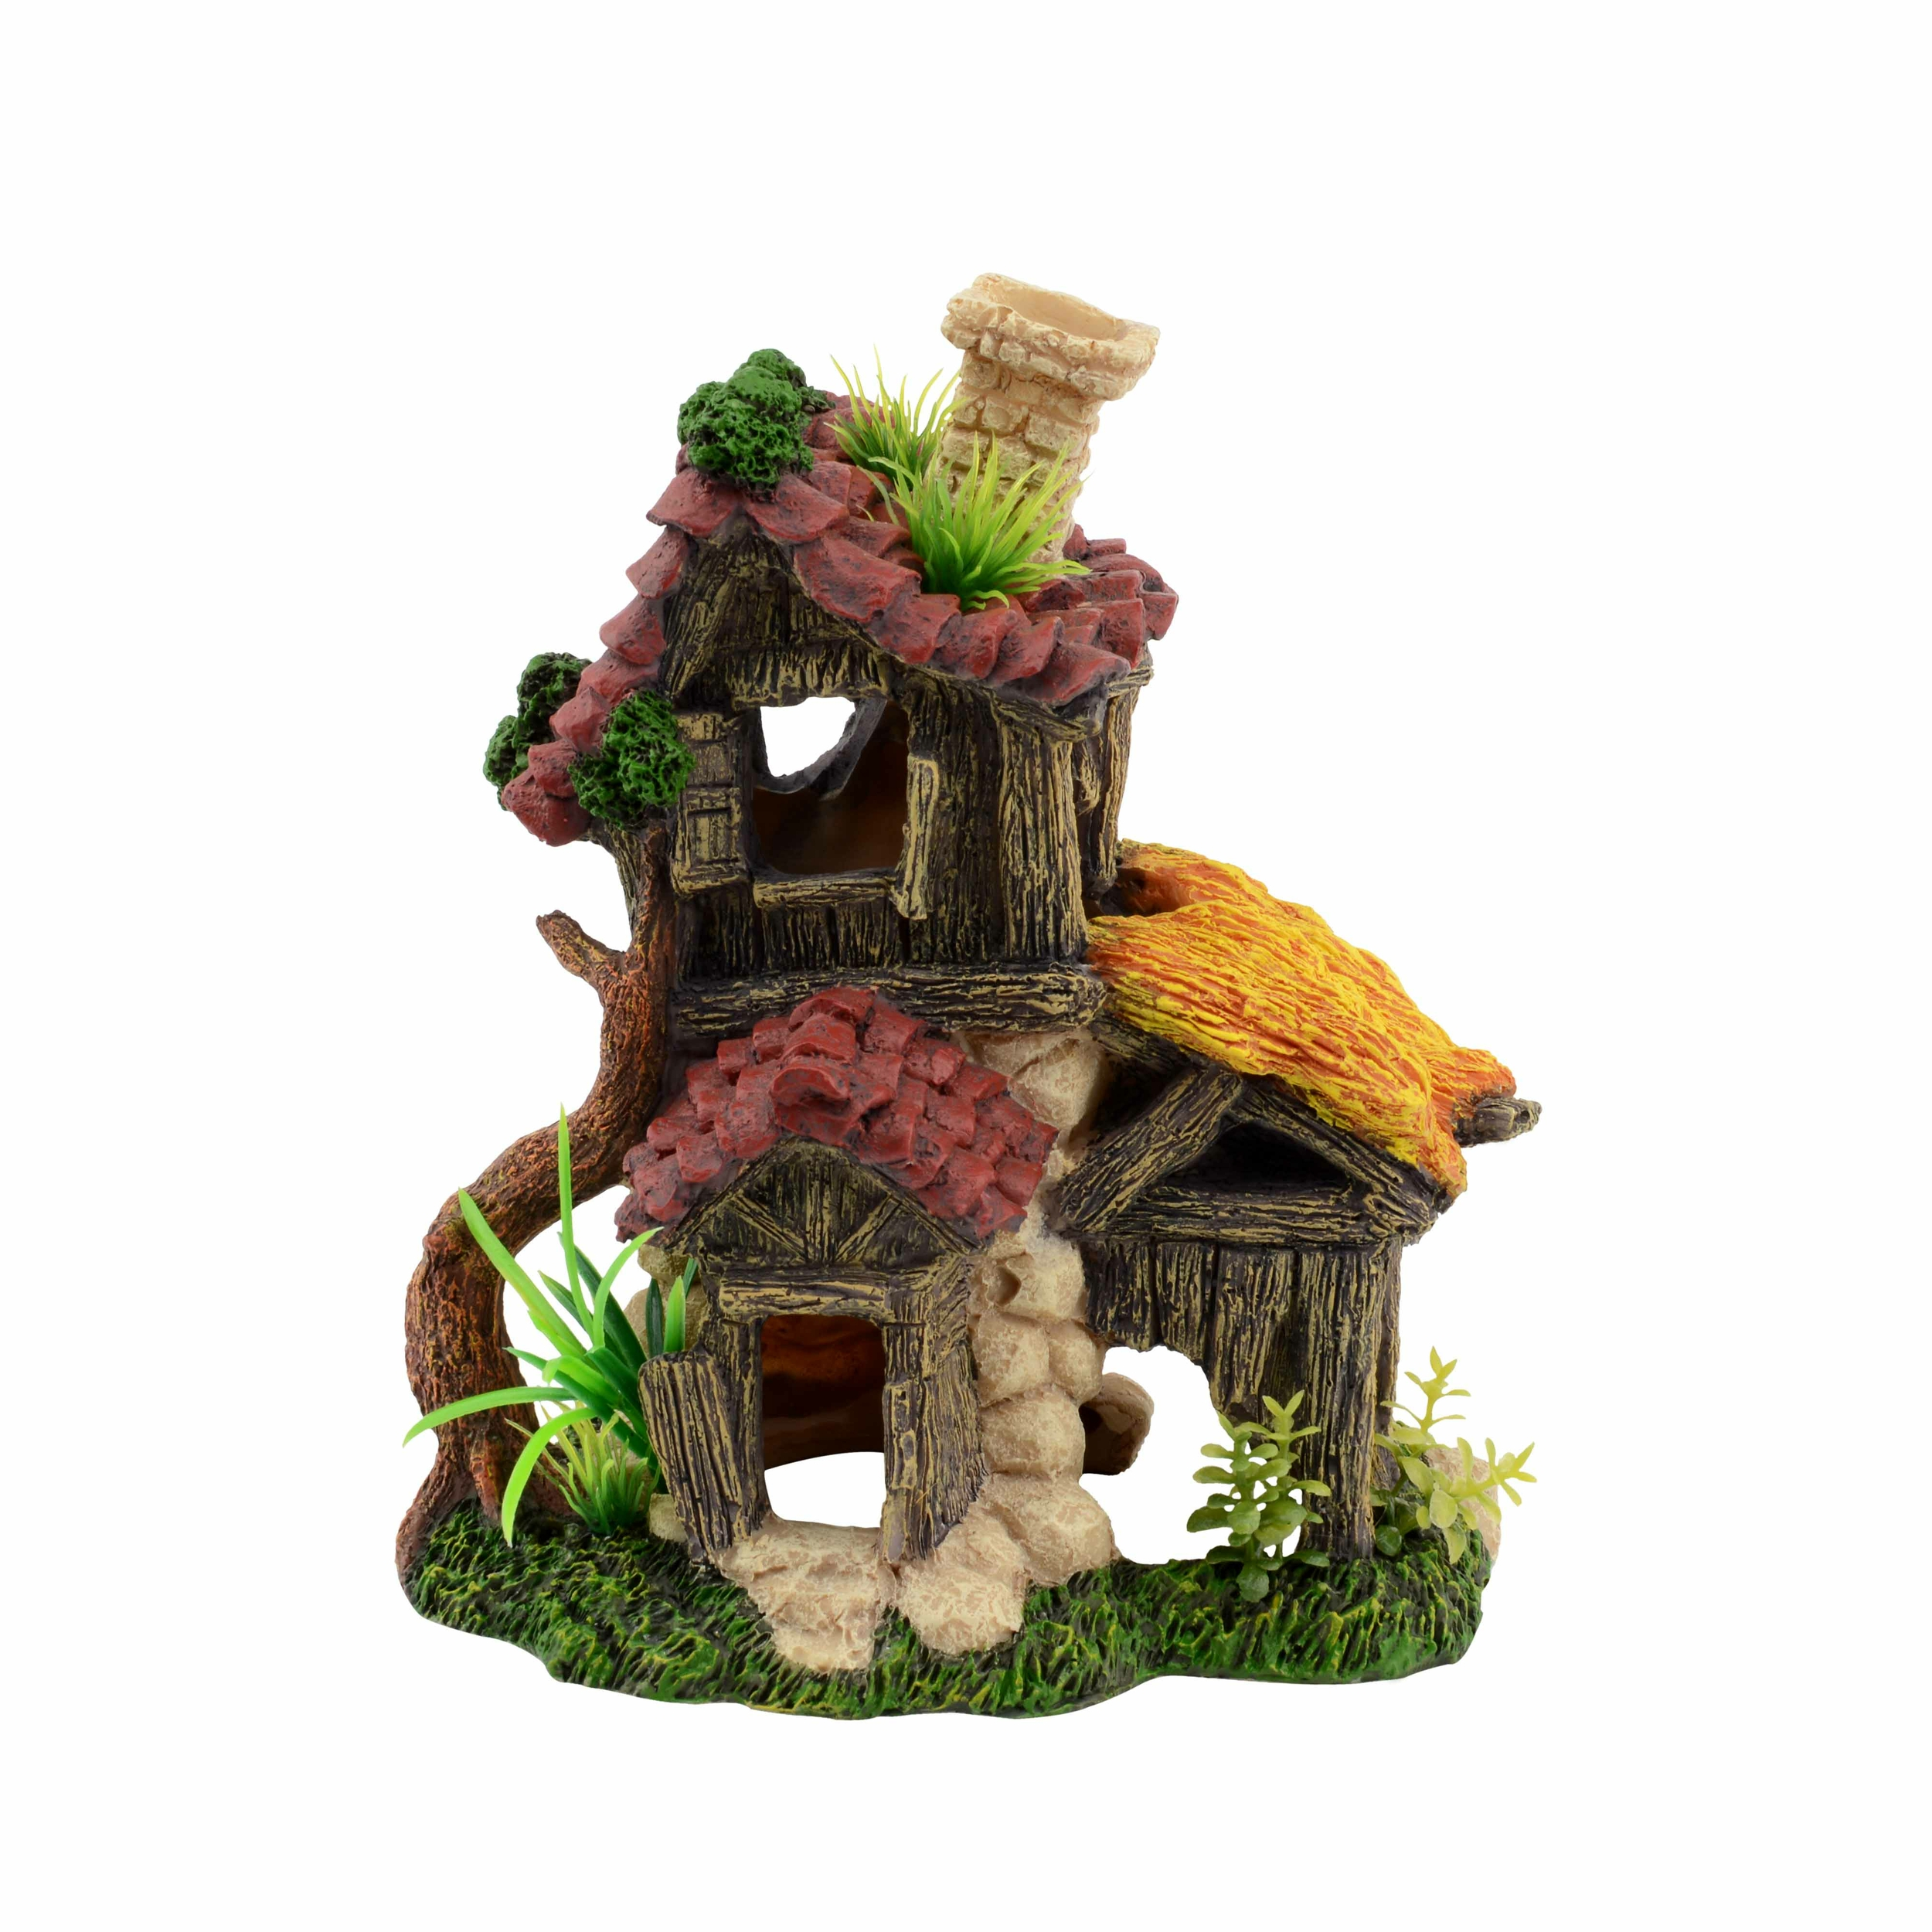 AQUAVIE Habitat Troll House décoration aquarium 14,5 x 12 x 17,5 cm